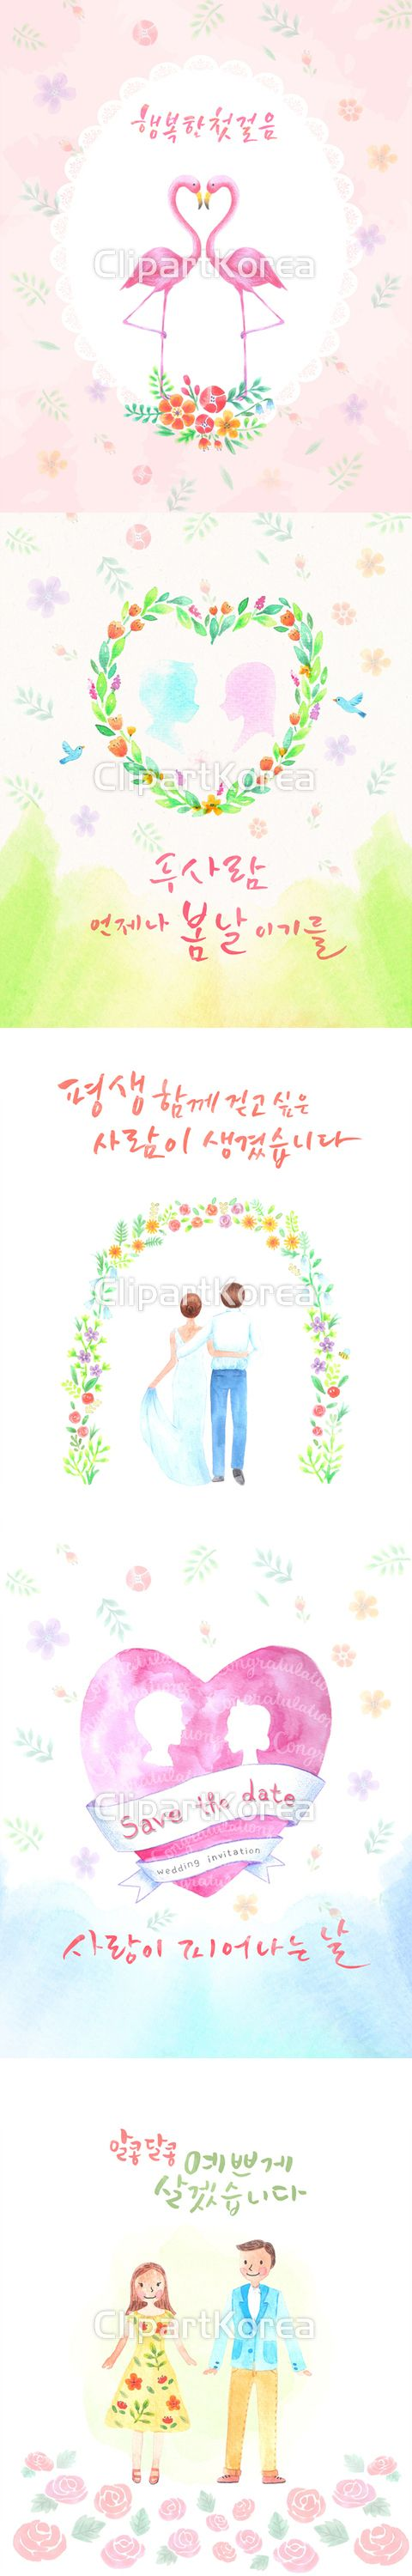 Wedding decorations clipart  Illustration attempt   Silver Stallus Logous and Illustrations